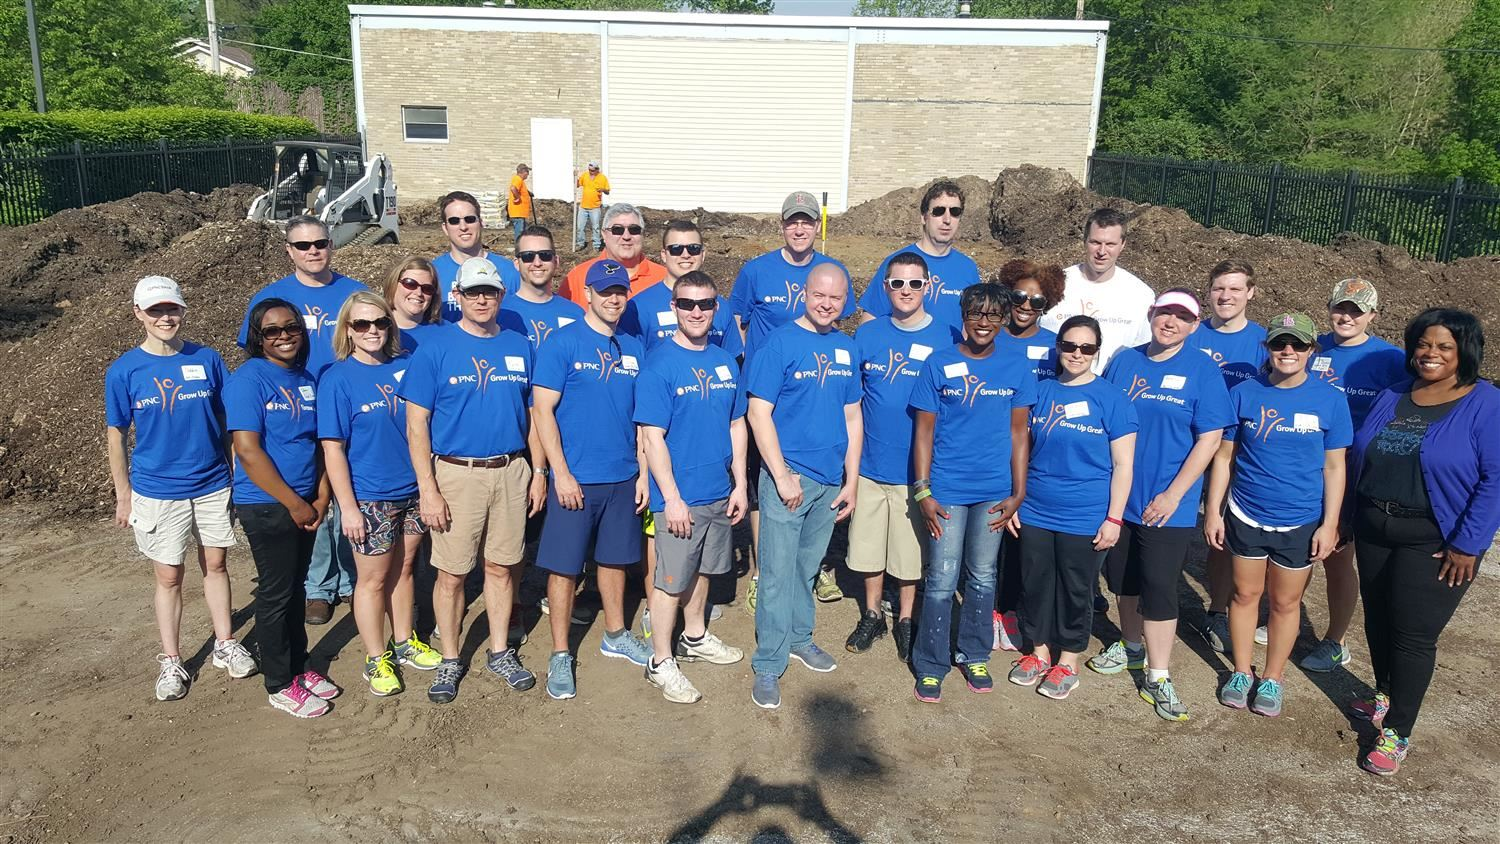 volunteers help build a playground